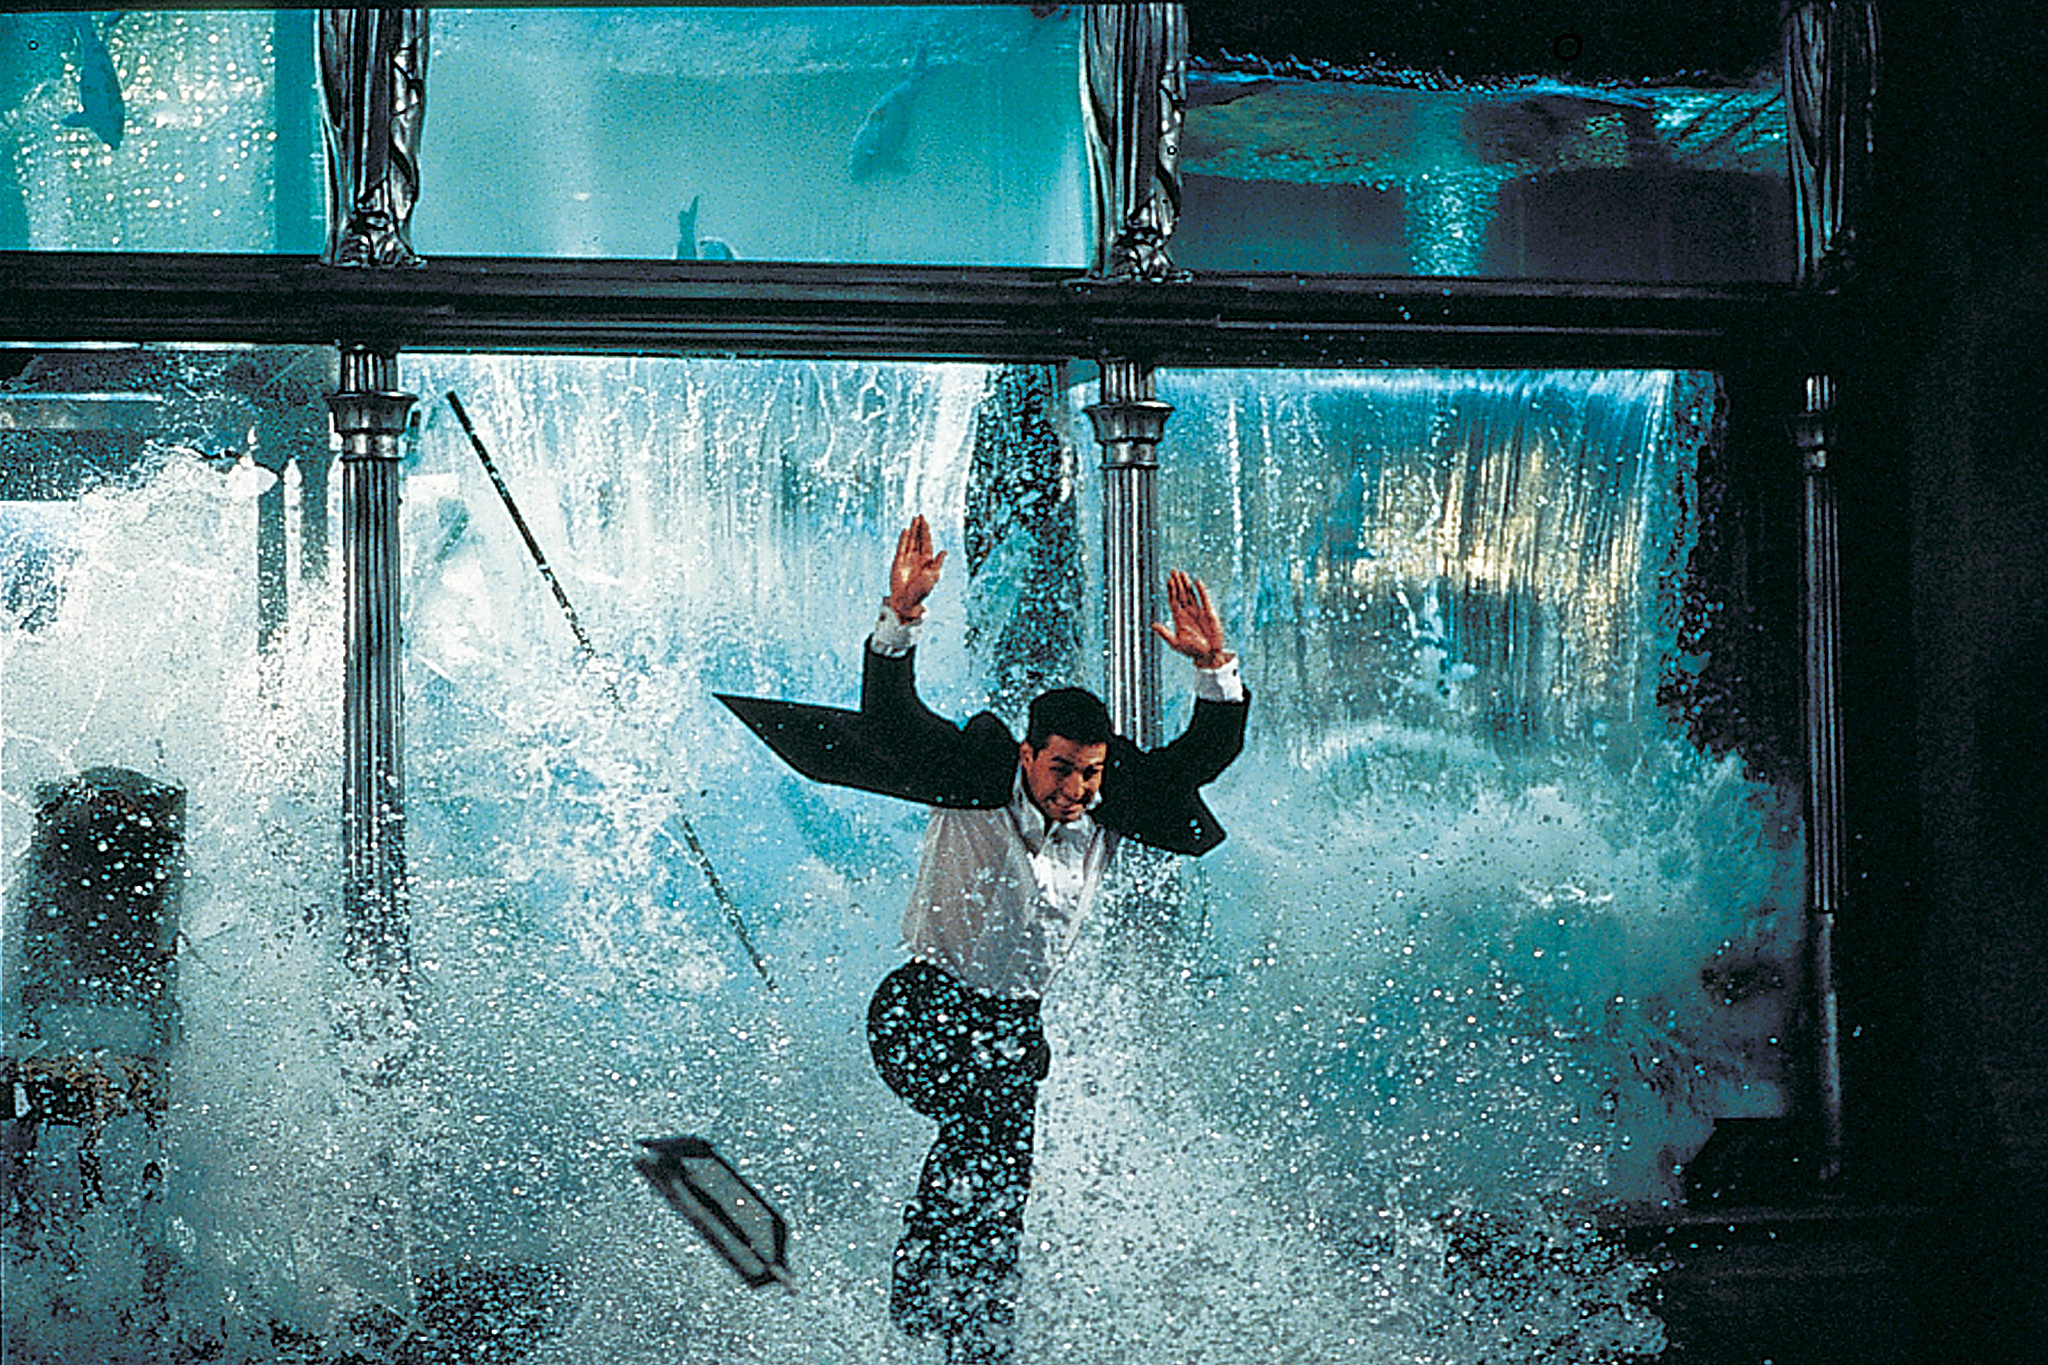 Mission Impossible, 100 best action movies